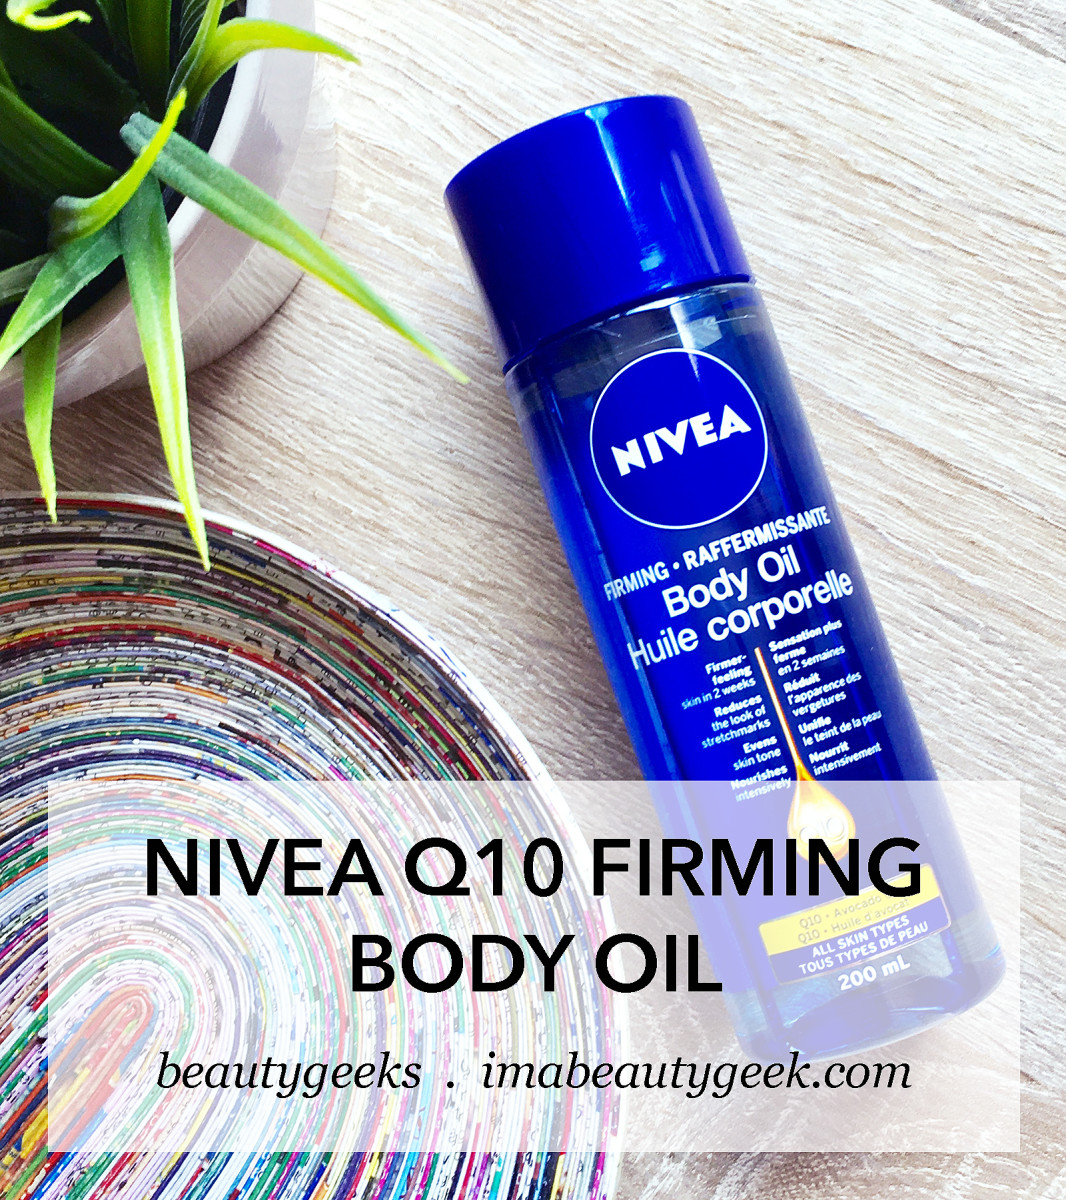 Nivea Q10 Firming Body Oil 2016